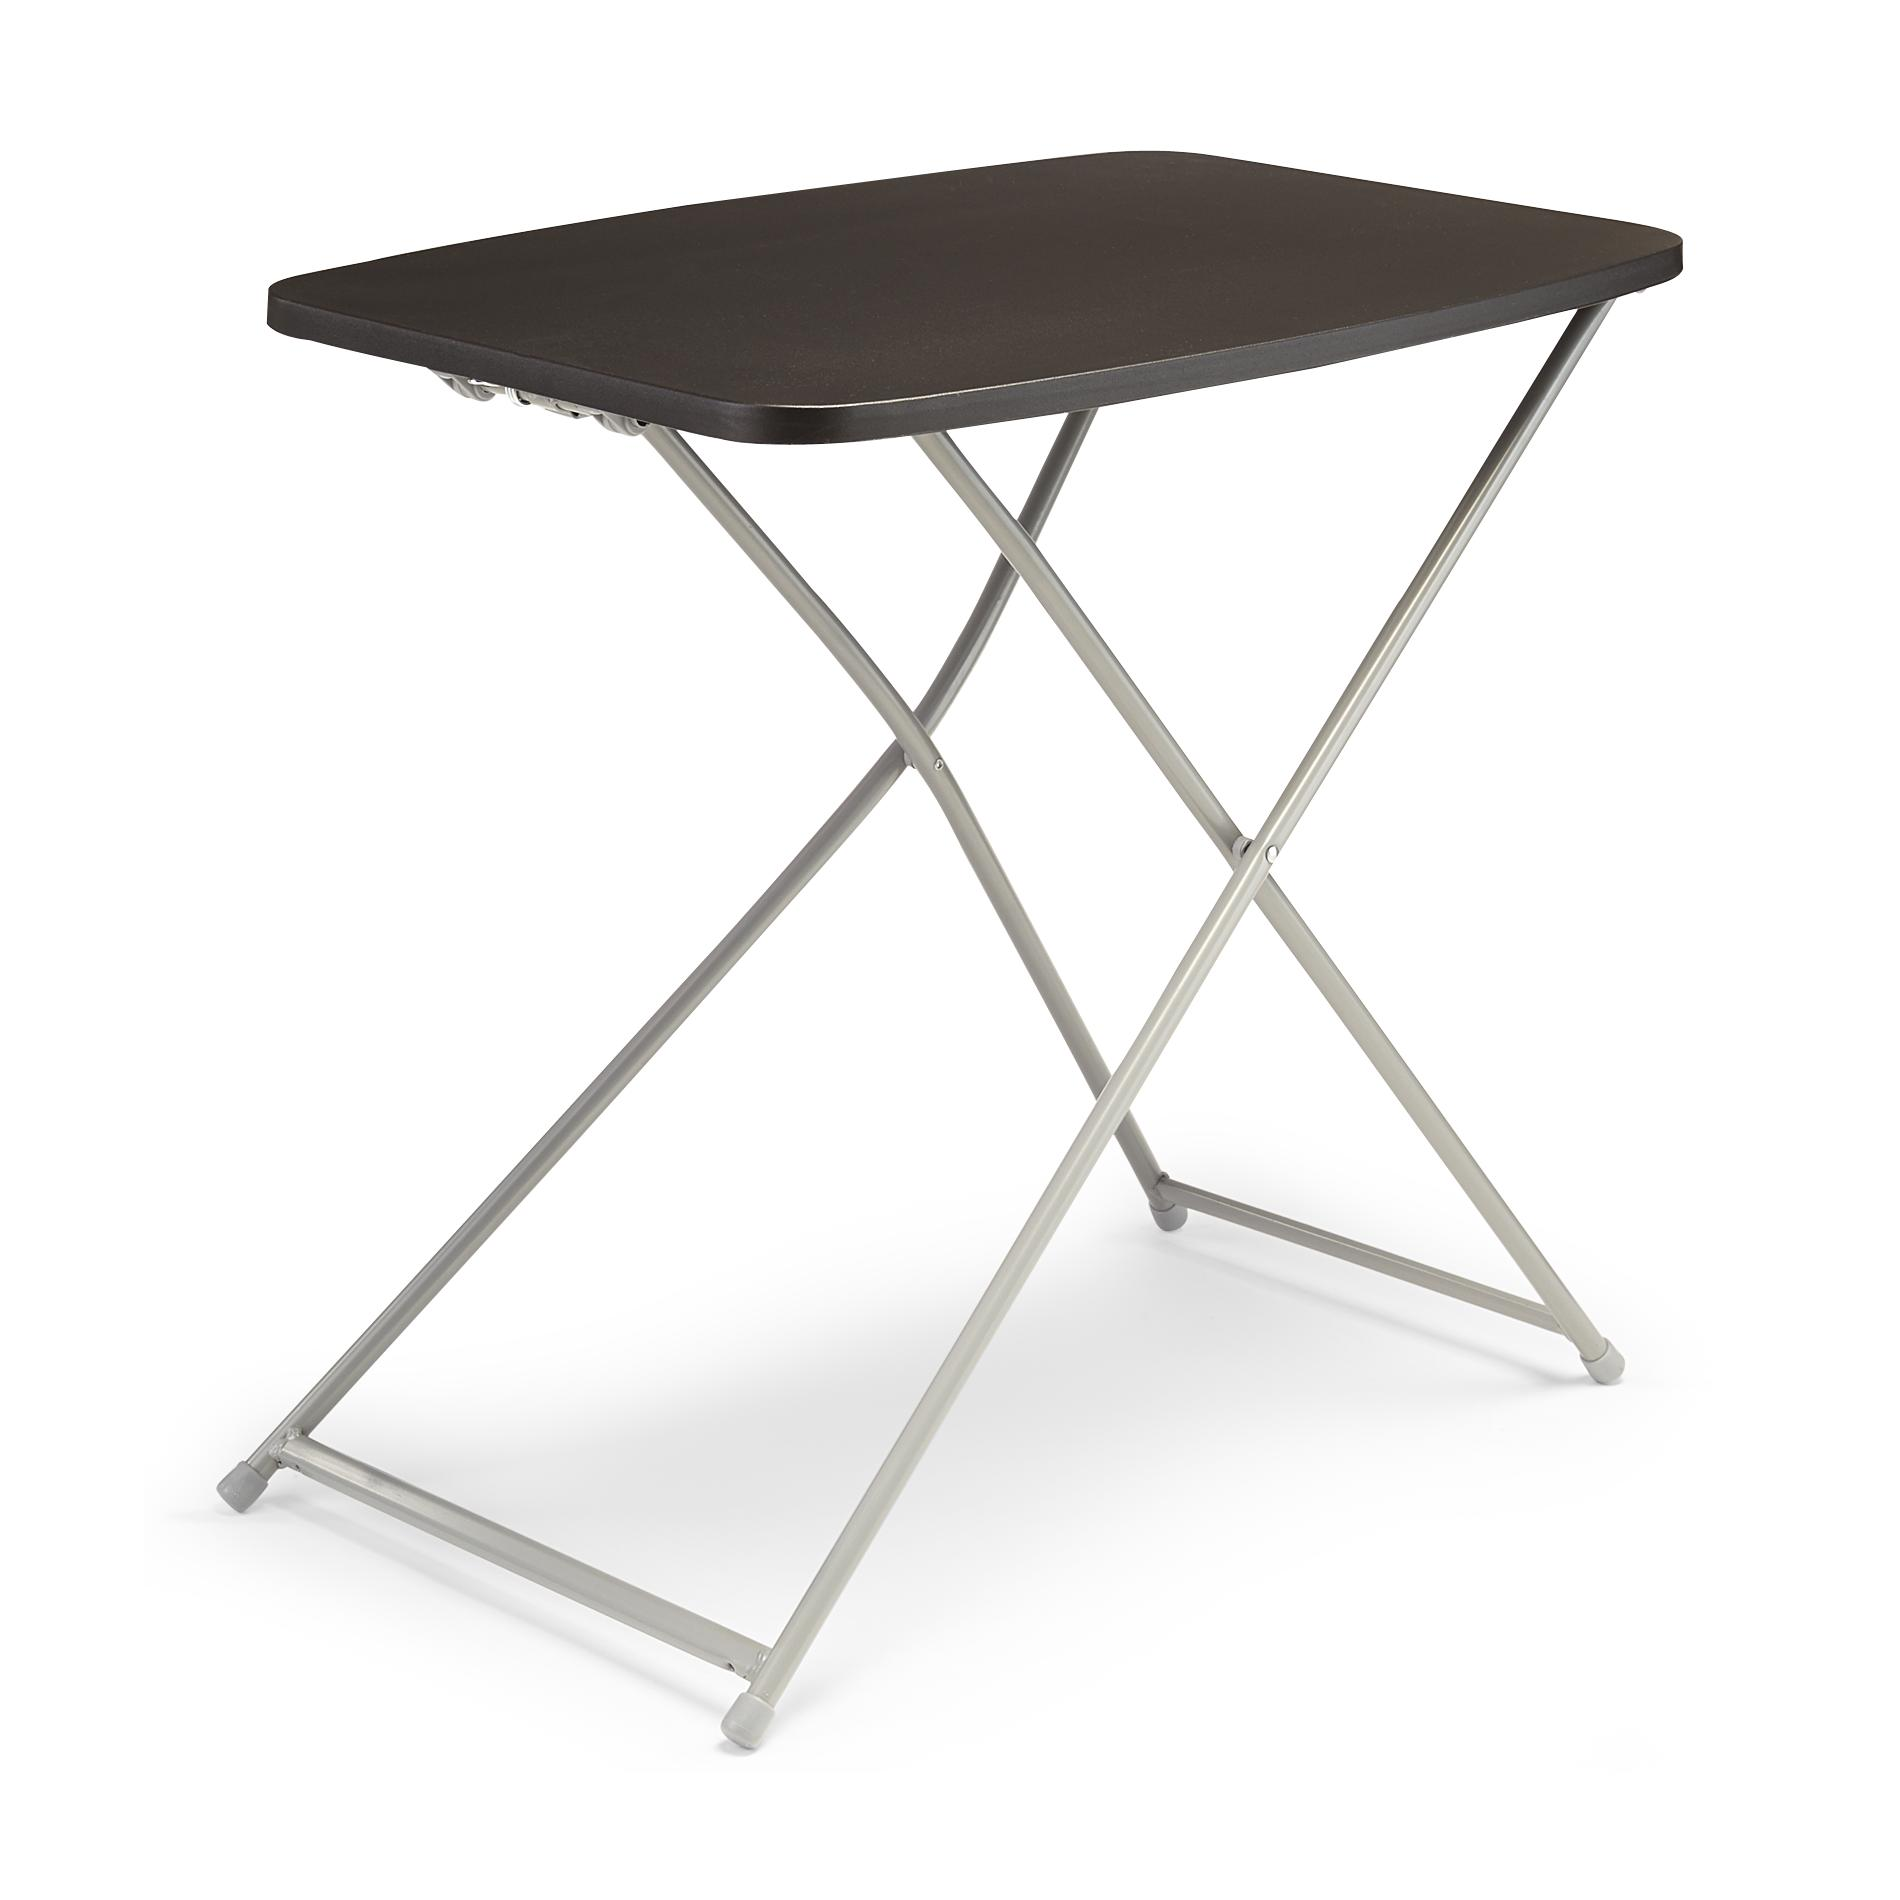 upc cosco home and office products black adjustable prod outdoor folding accent table product for storage bench with cushion ikea sheesham side small drop leaf chairs brown metal